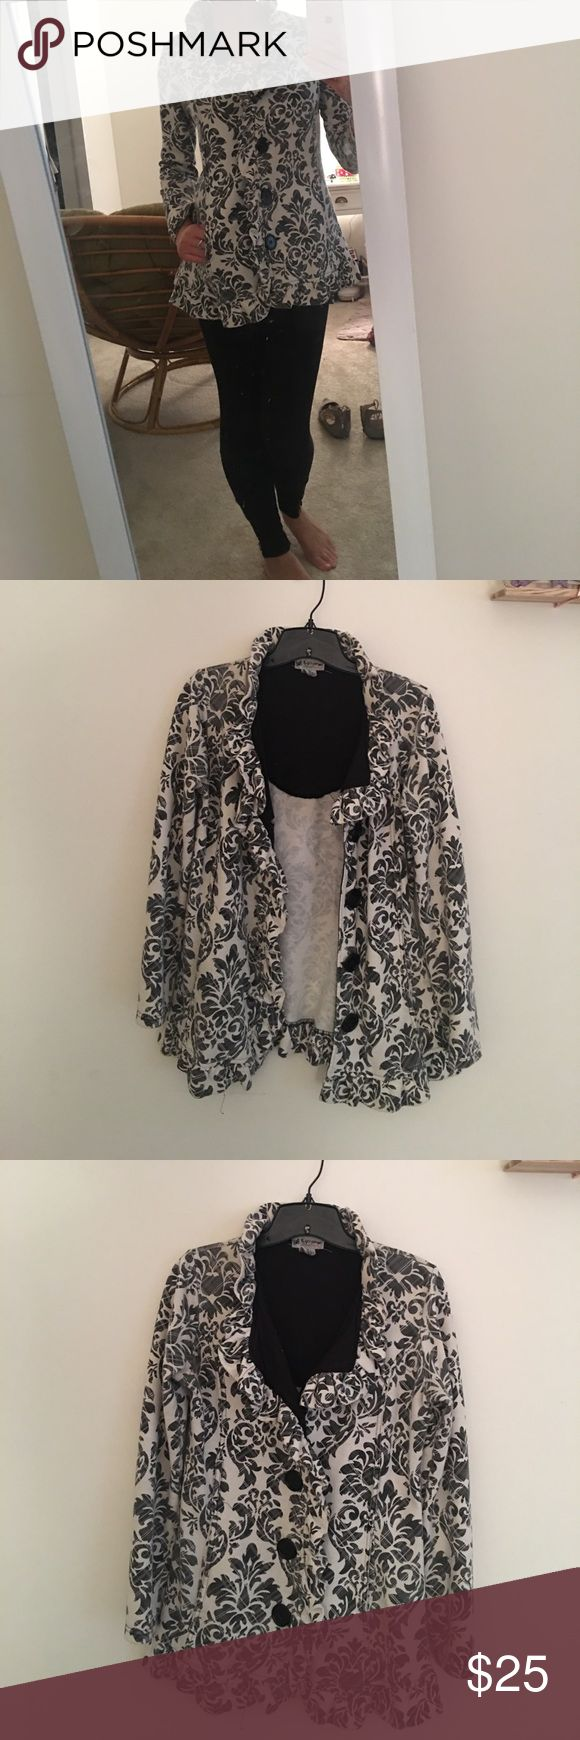 Fall/Light Coat It's a cute black and white design great for semi chilly weather but still being fashionable! Honestly got the coat in the adolescent section of Khols but it still looks very fashionable and fits! Great coat for the big city stylish look! Jackets & Coats